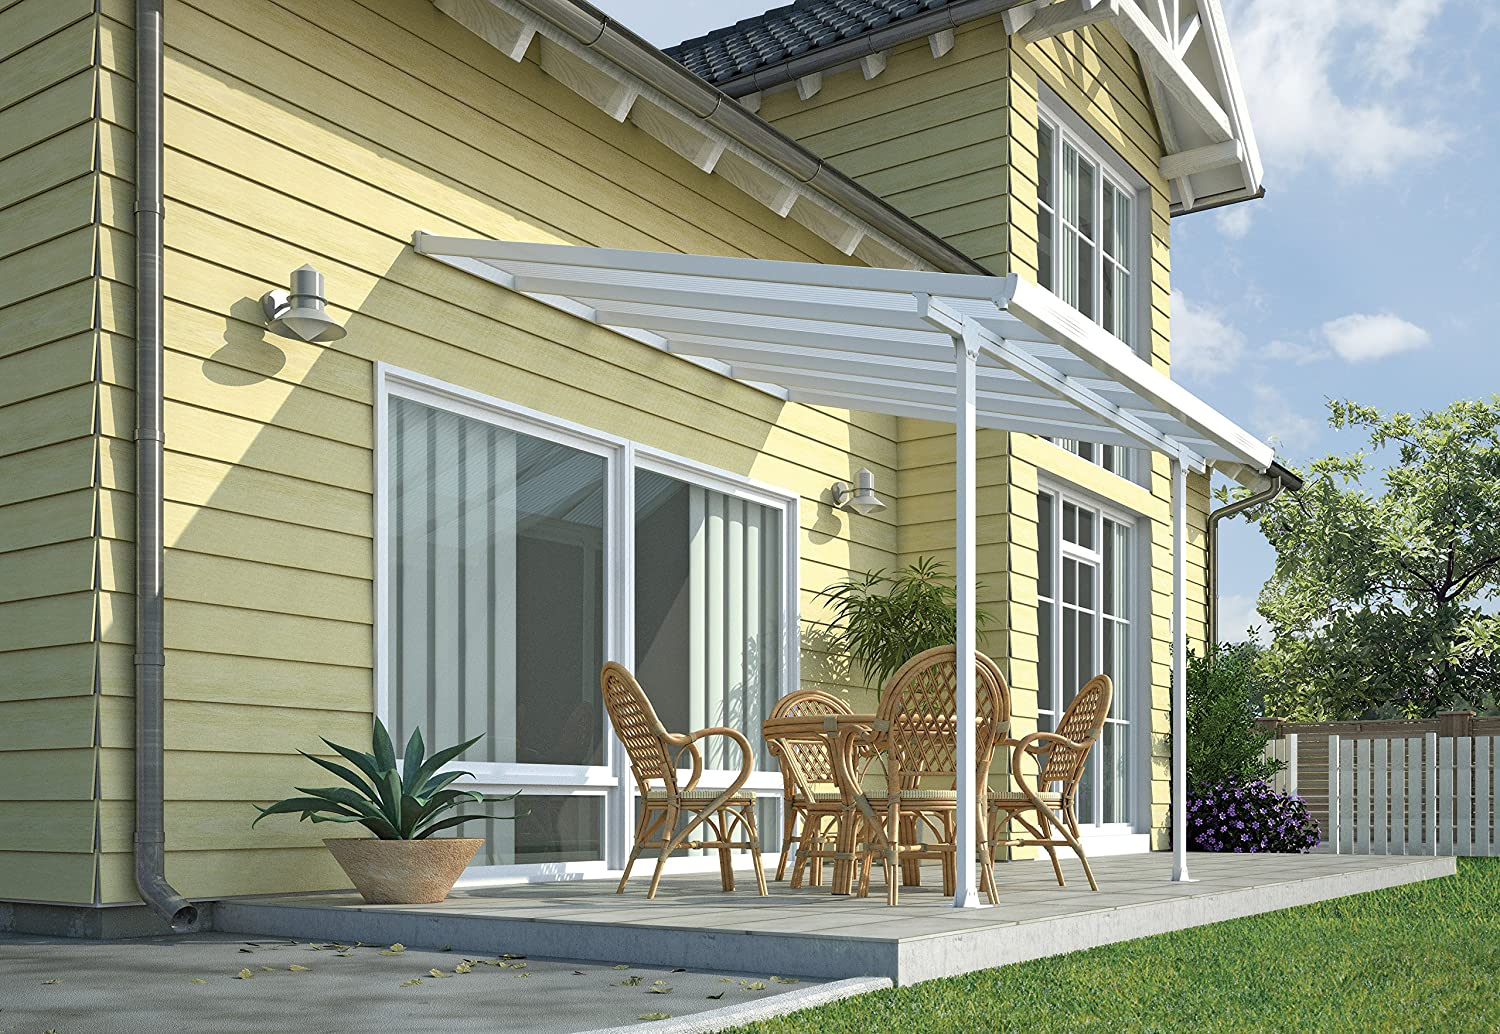 Amazing Palram Pergola Patio Cover Feria 3 X 3.05m With Robust Structure For  Year Round Use   White: Amazon.co.uk: Garden U0026 Outdoors